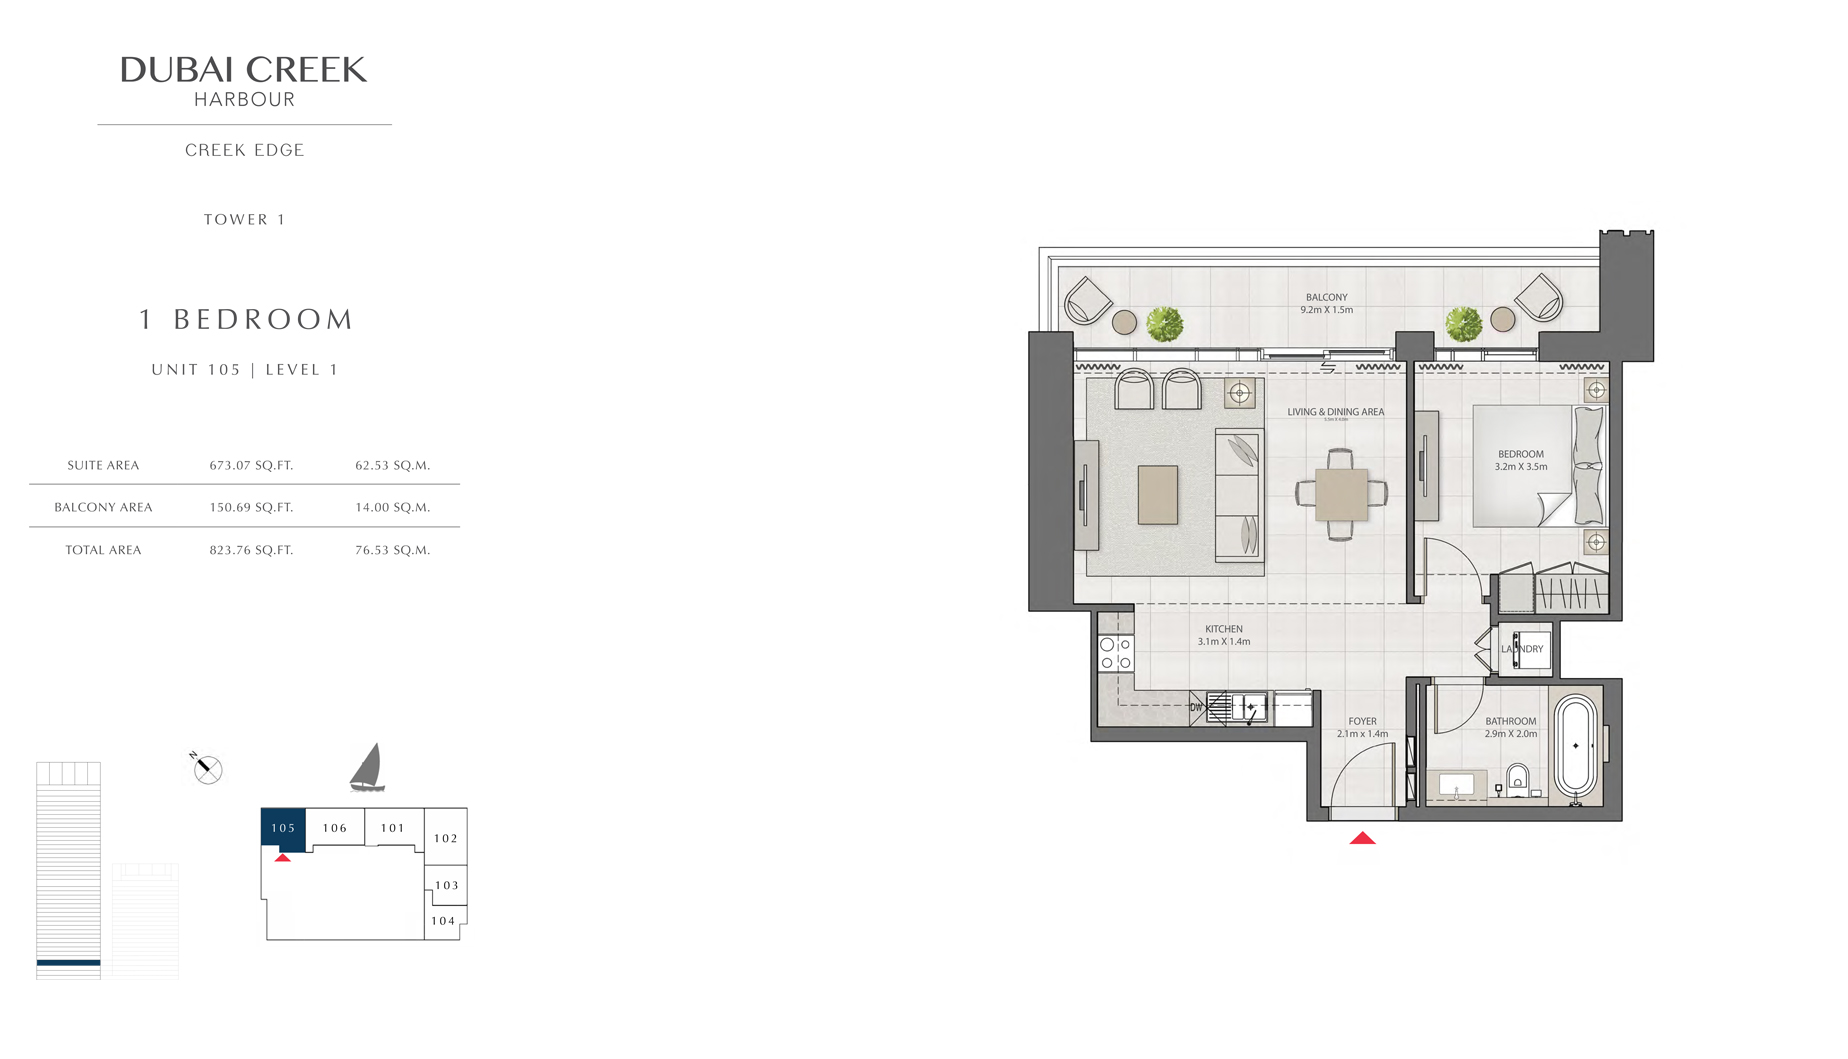 1 Bedroom Tower 1 Unit 105 Level 1 Size 823 sq.ft